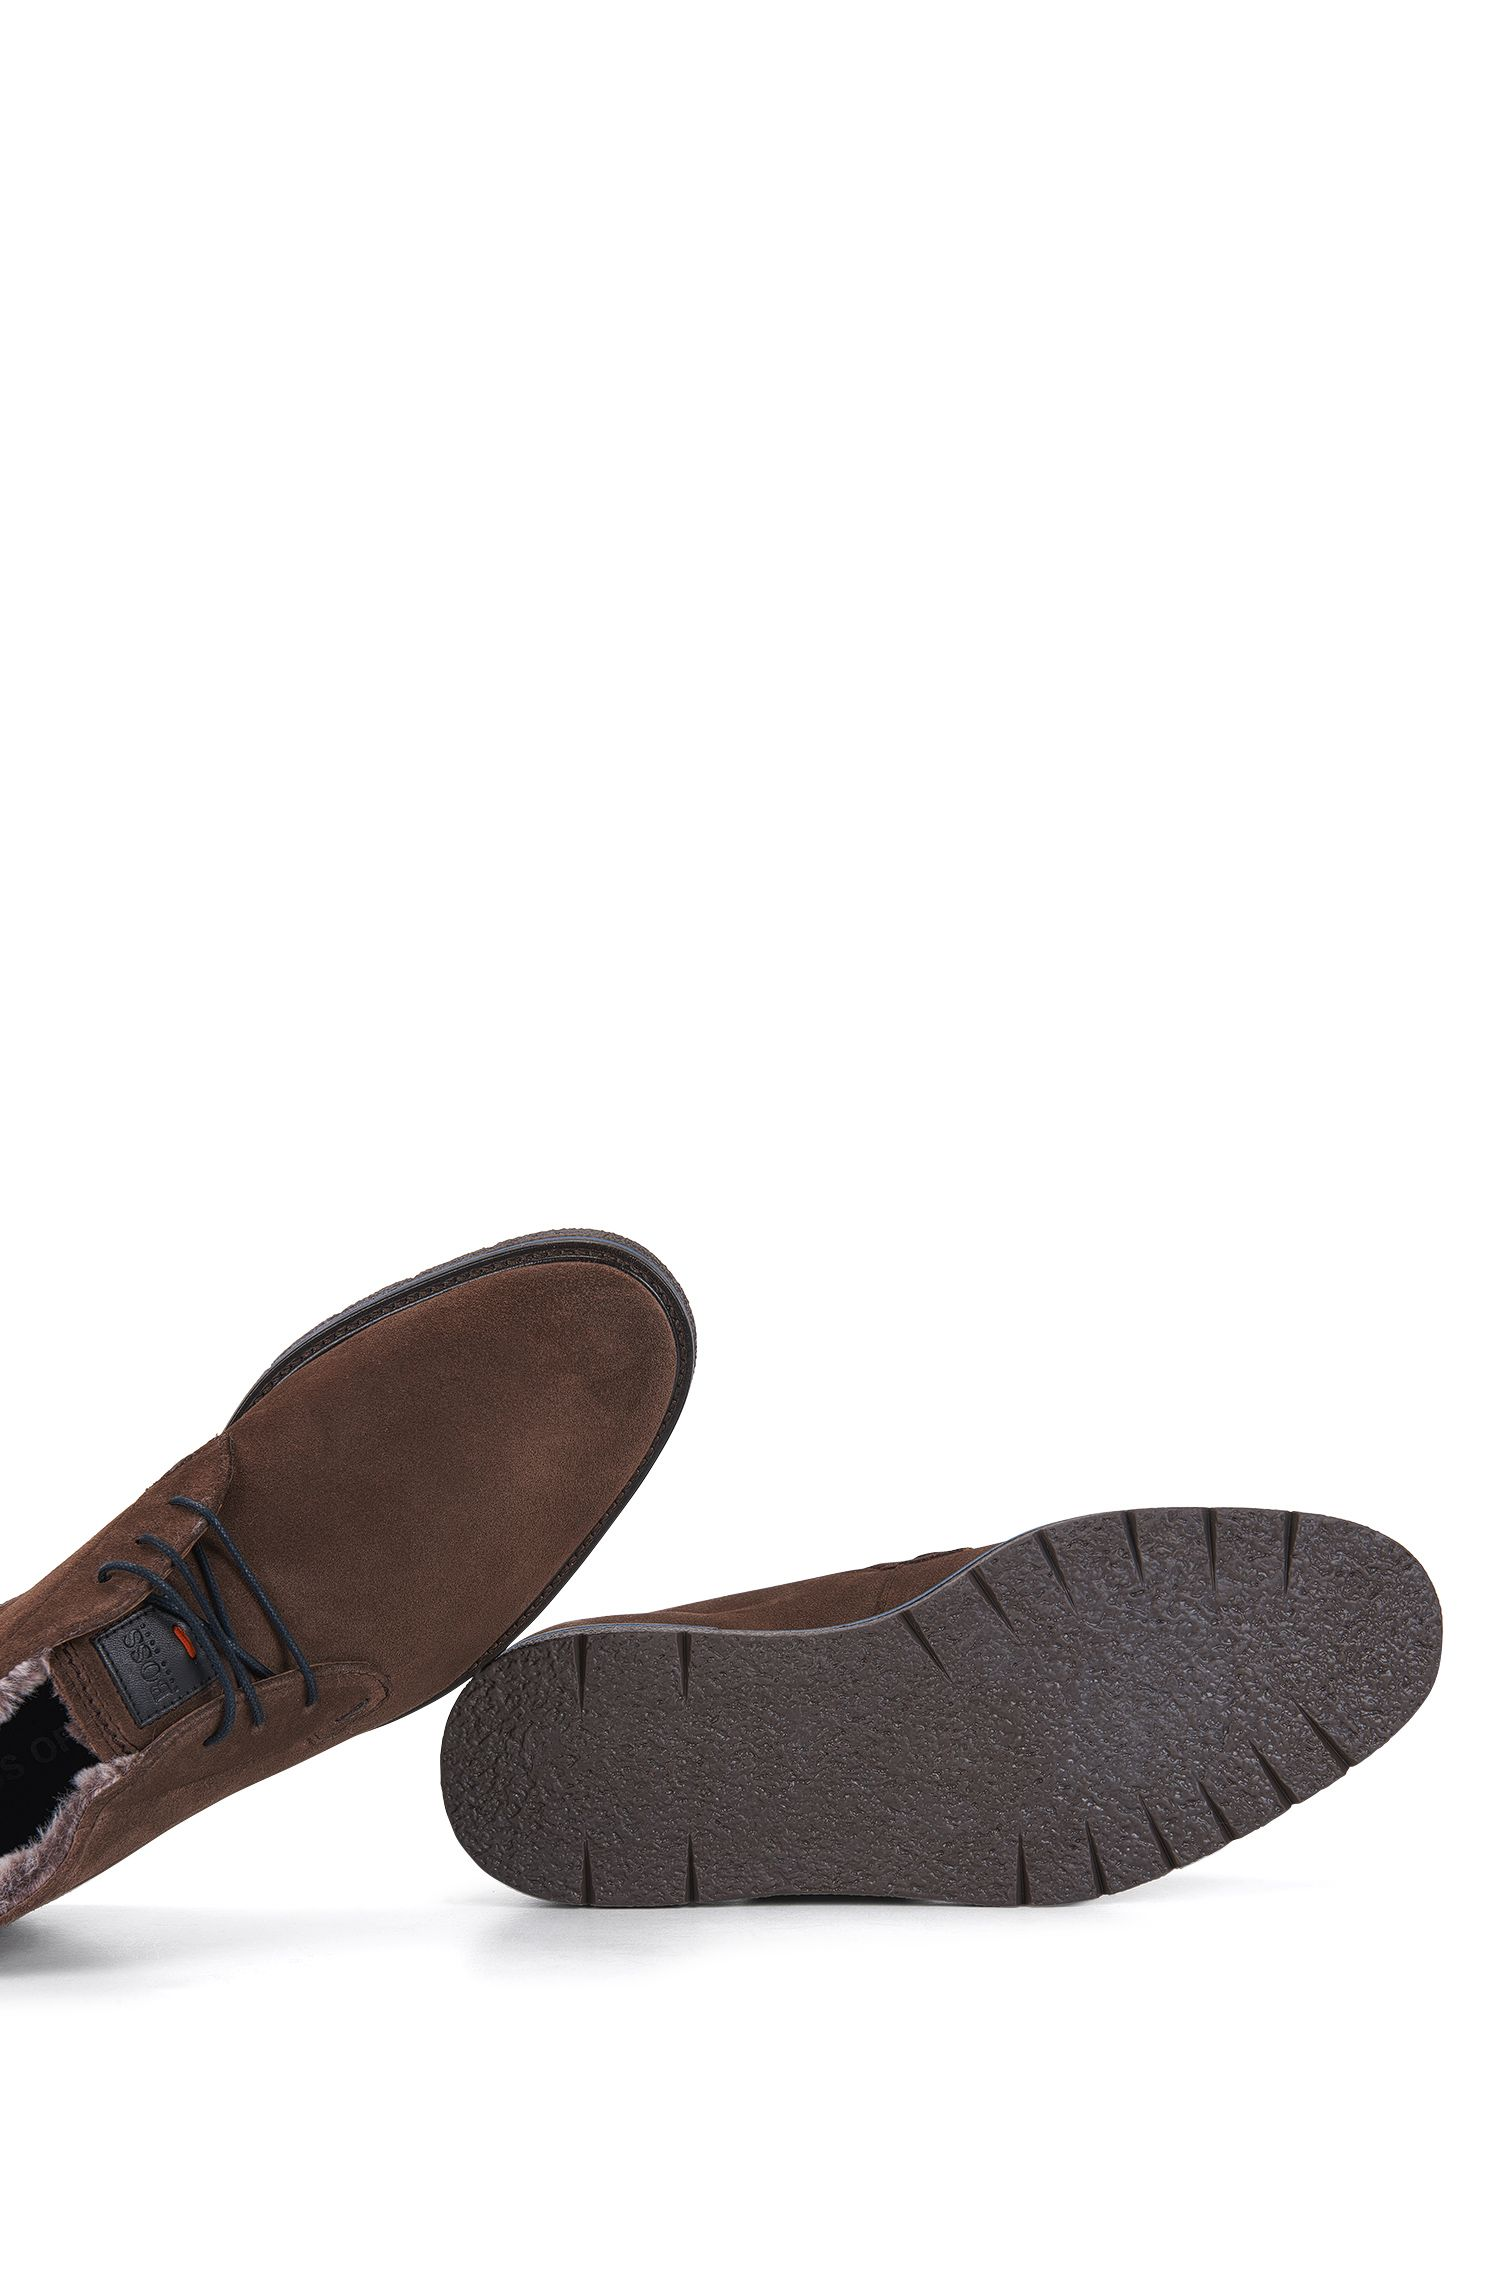 Fur-Lined Suede Desert Boot | Tuned Desb Sdfur, Dark Brown